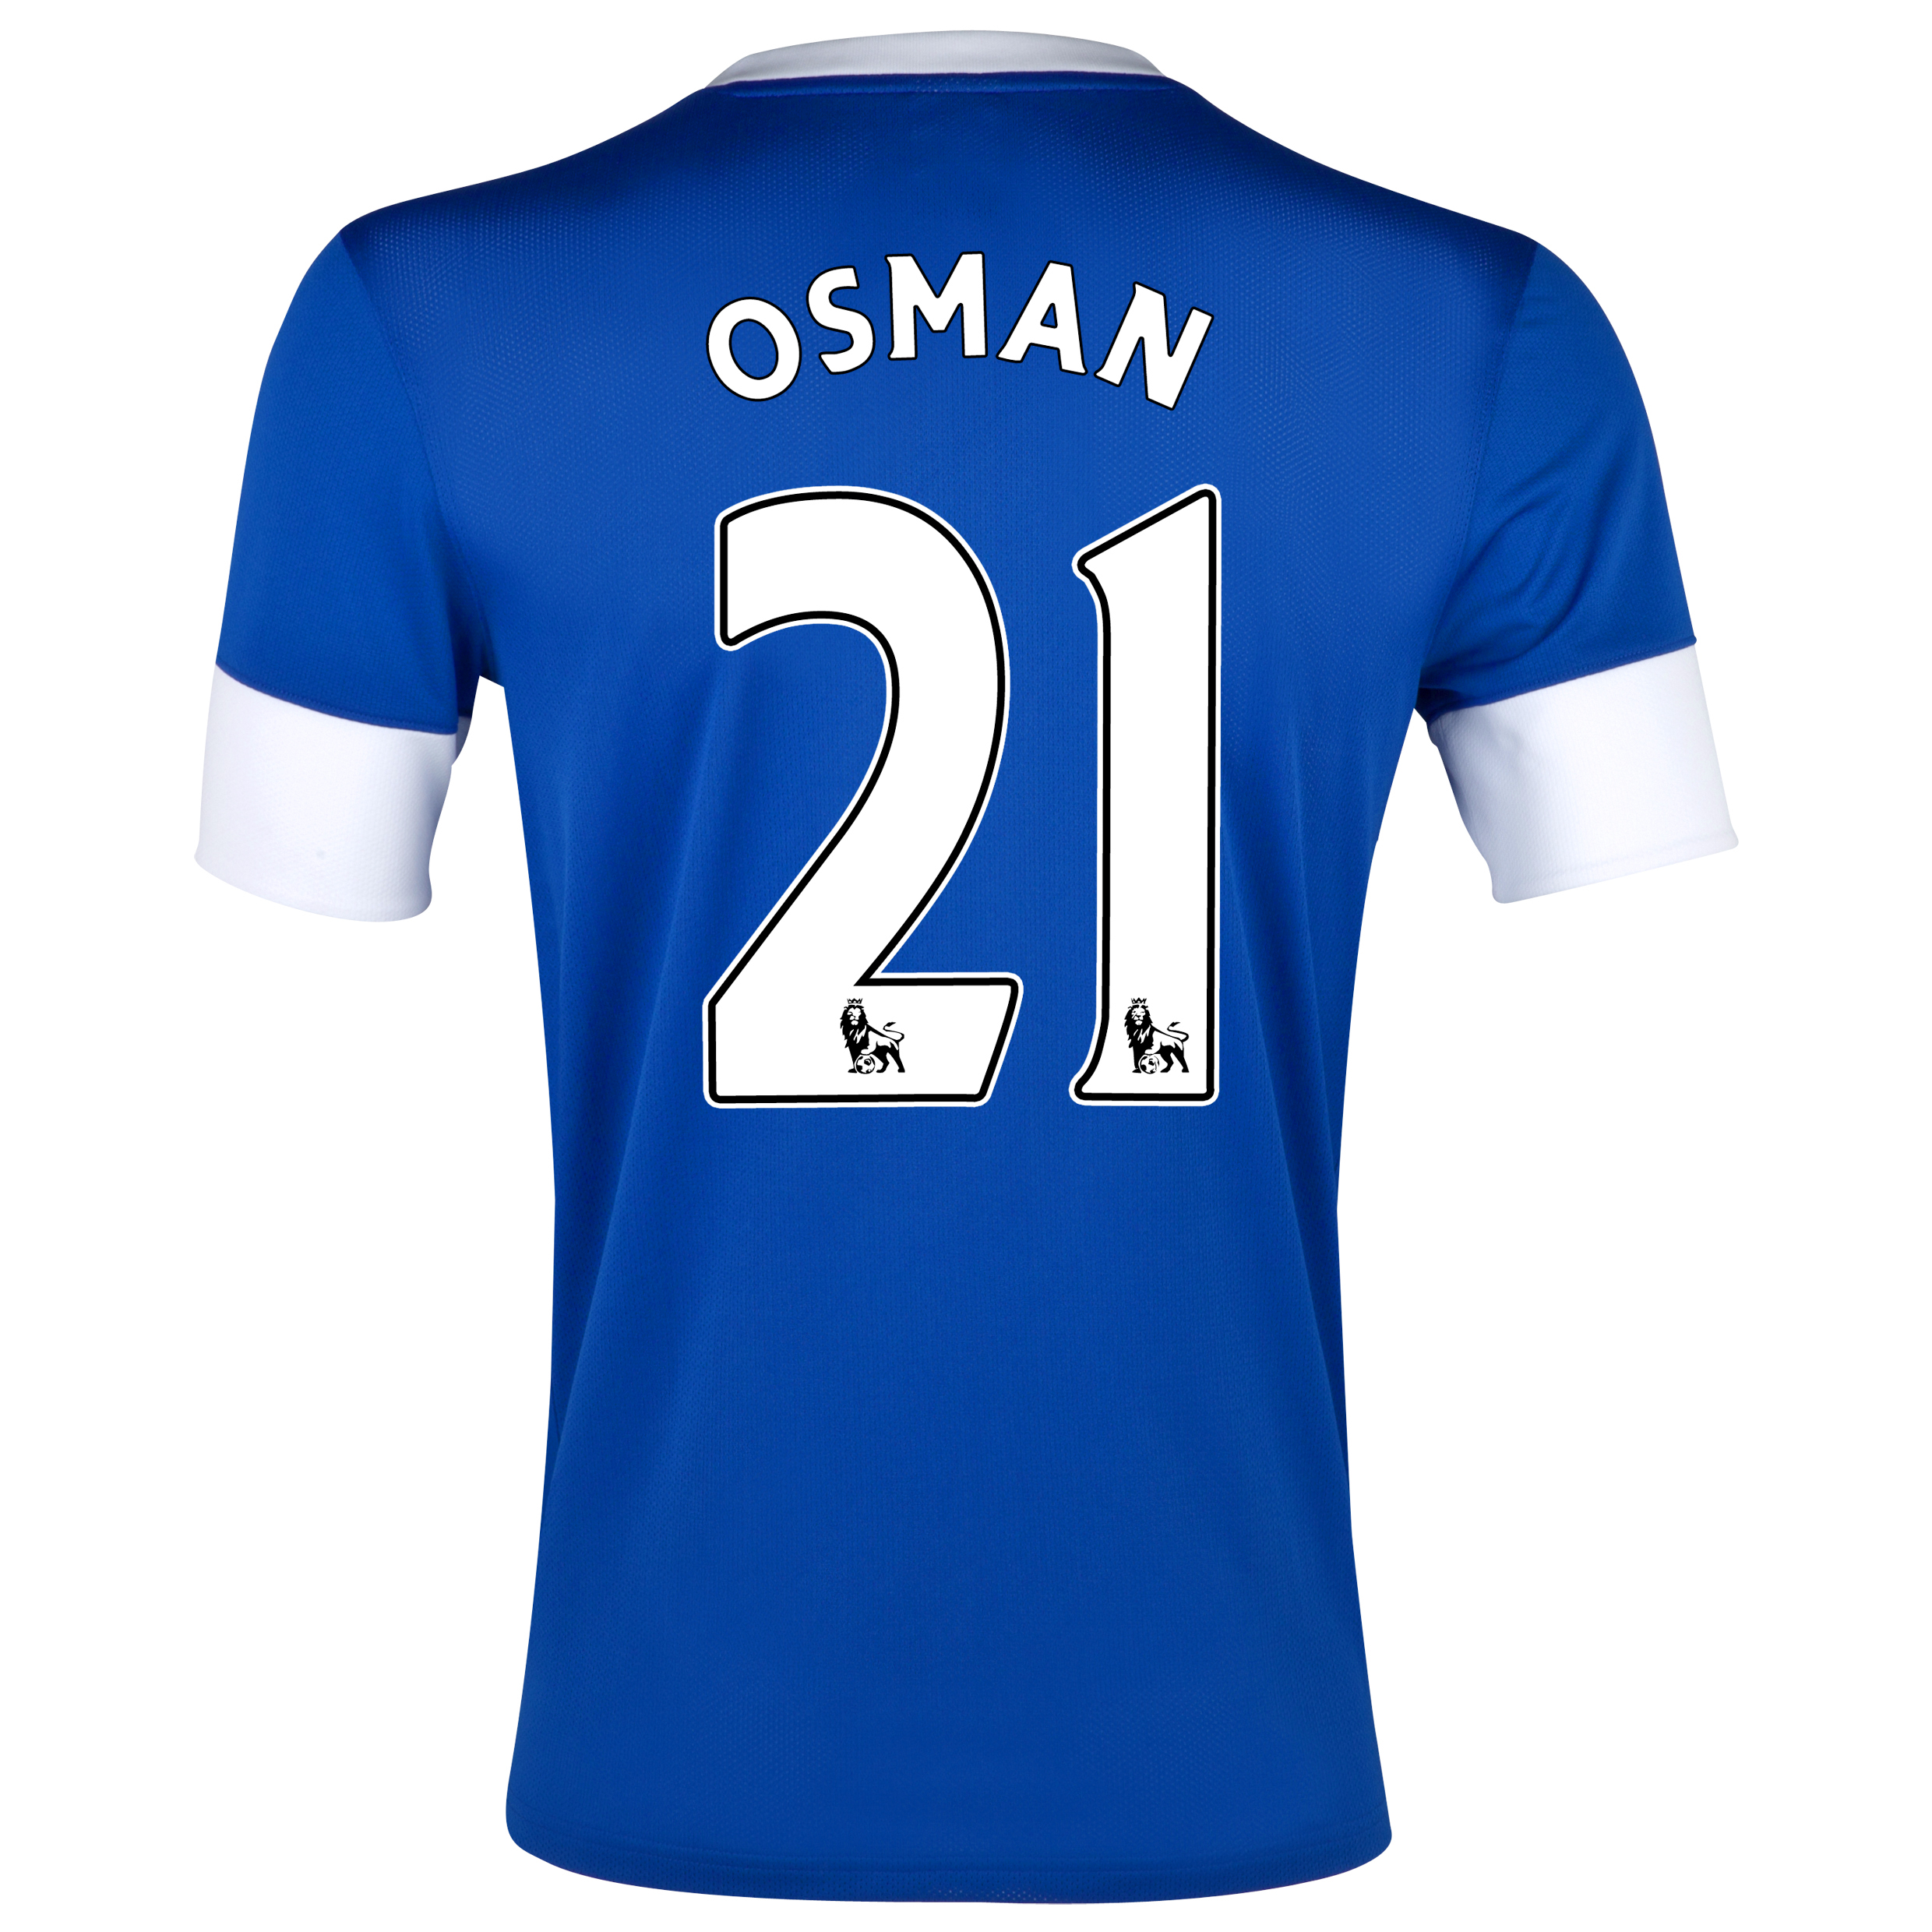 Everton Home Shirt 2012/13 with Osman 21 printing